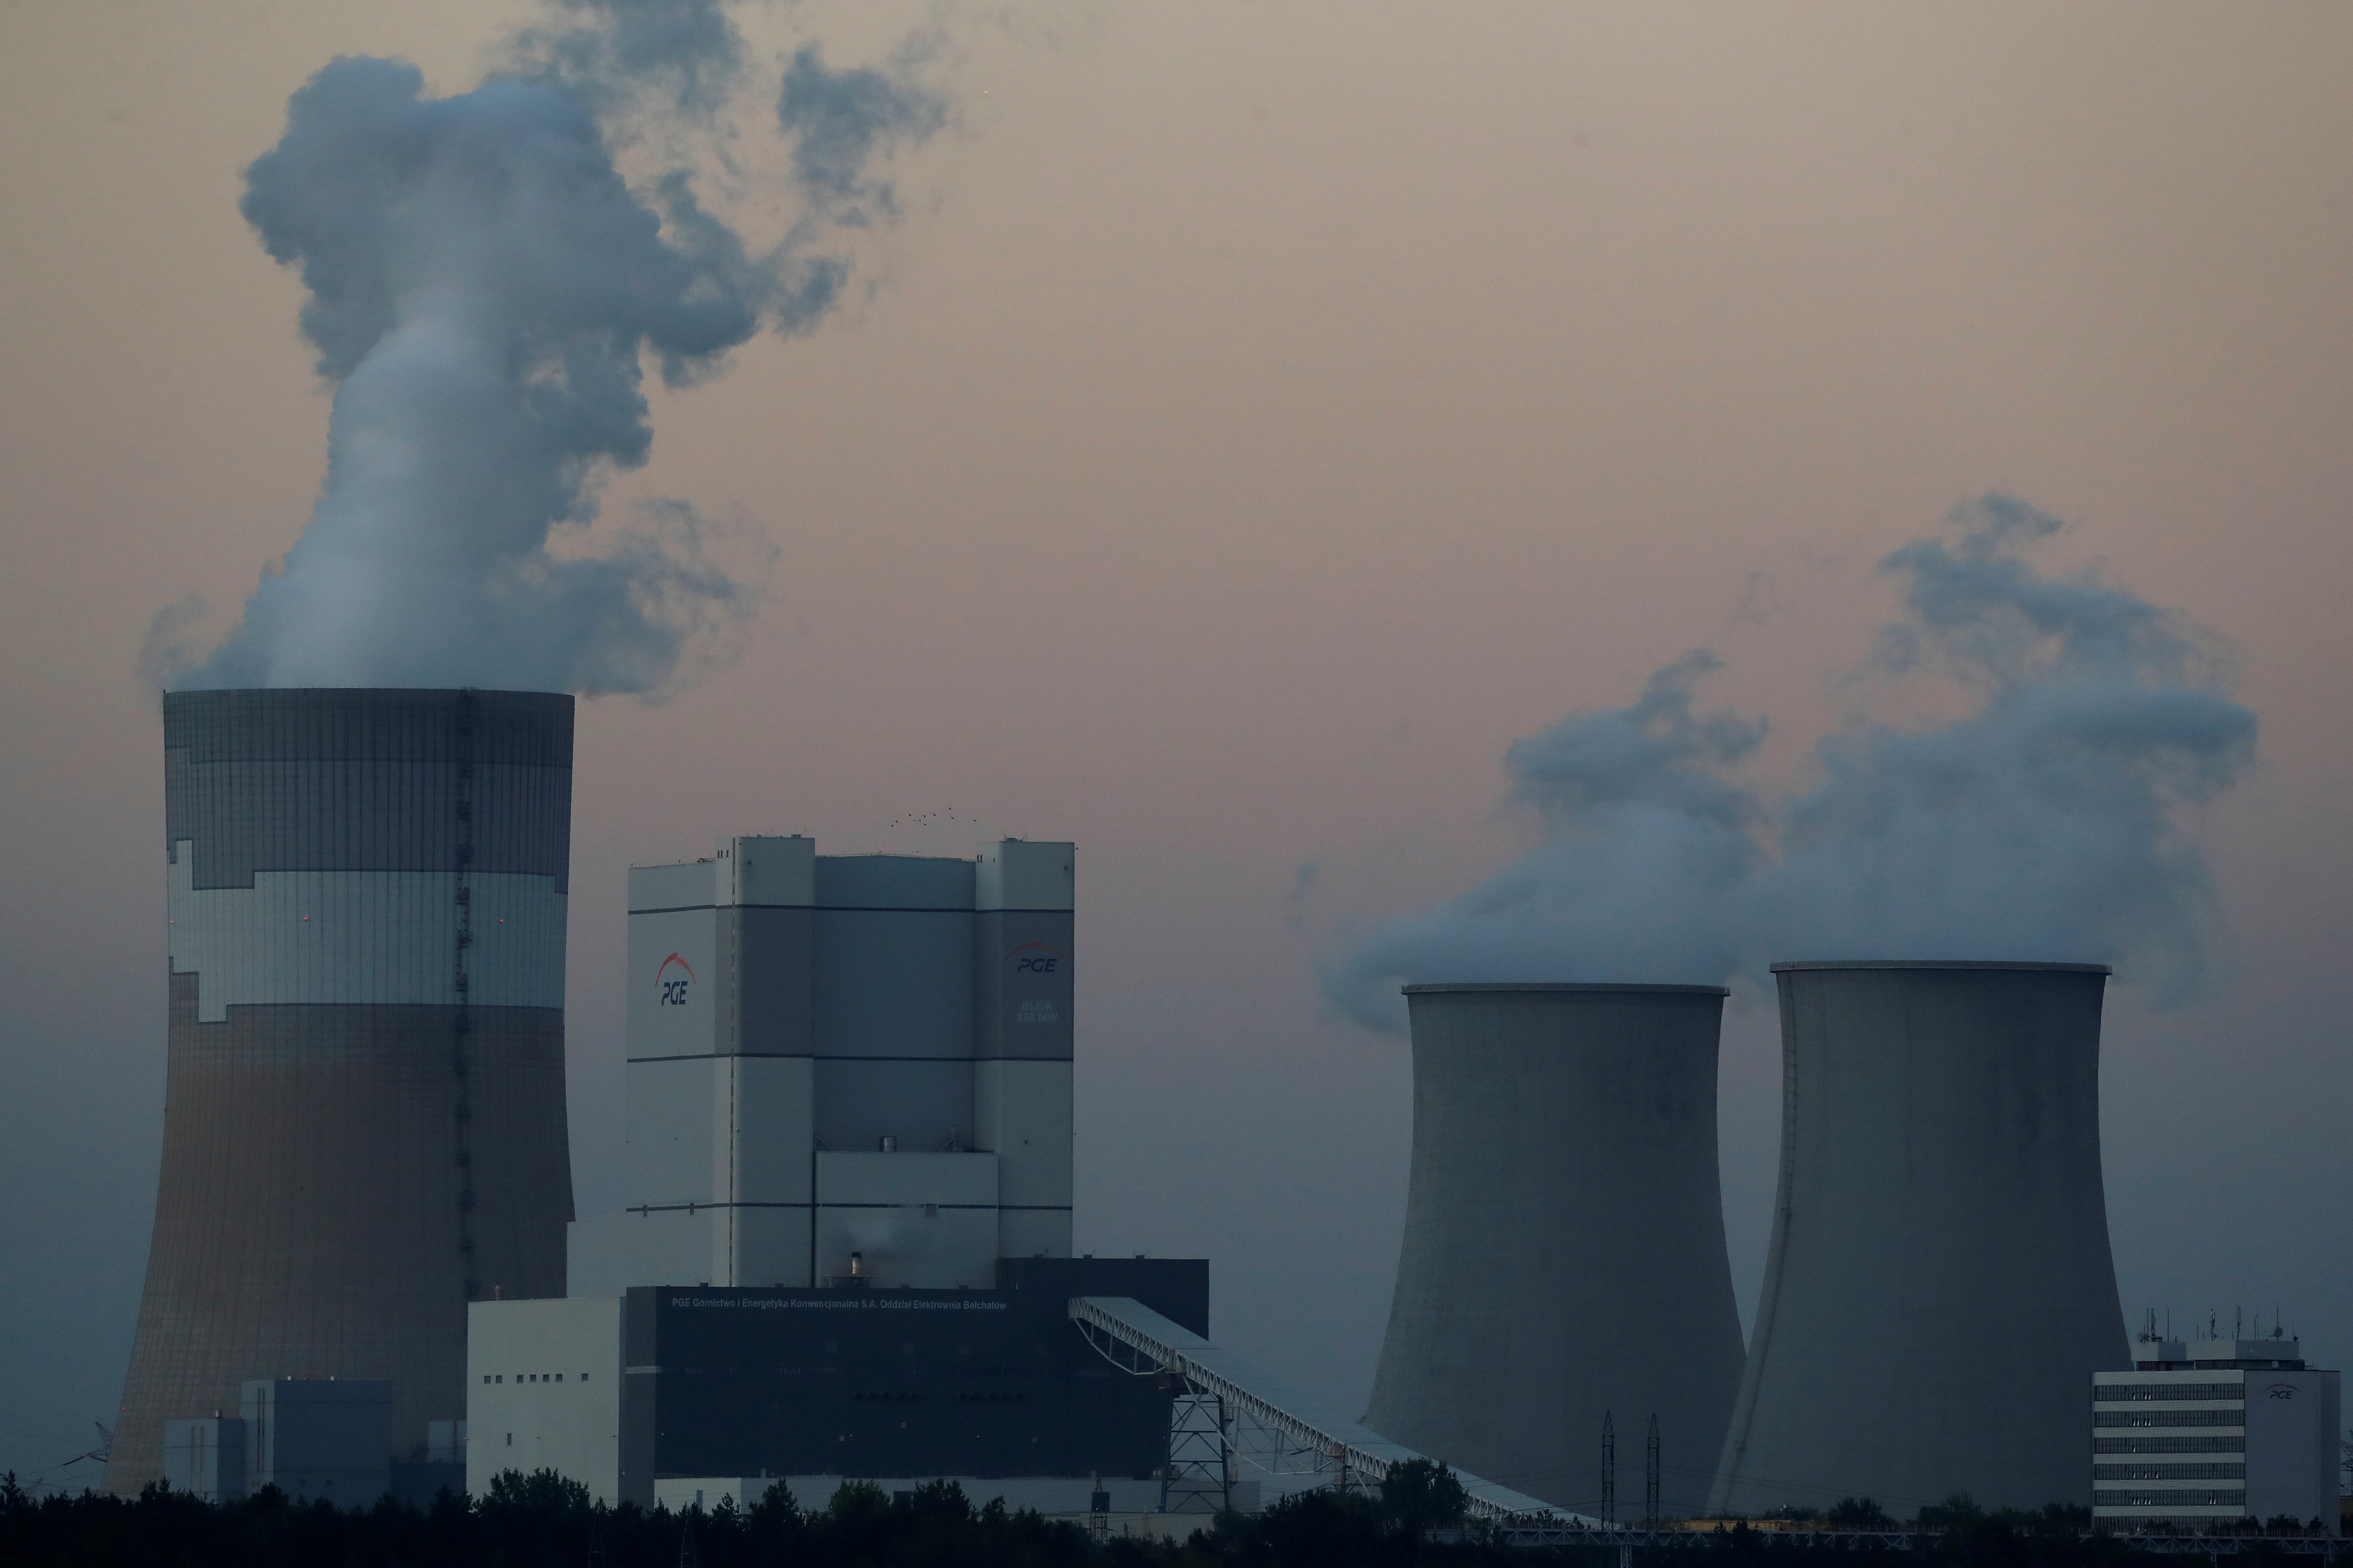 Belchatow Power Station, Europe's largest coal-fired power plant operated by PGE Group, is pictured near Belchatow, September 12, 2018. REUTERS/Kacper Pempel